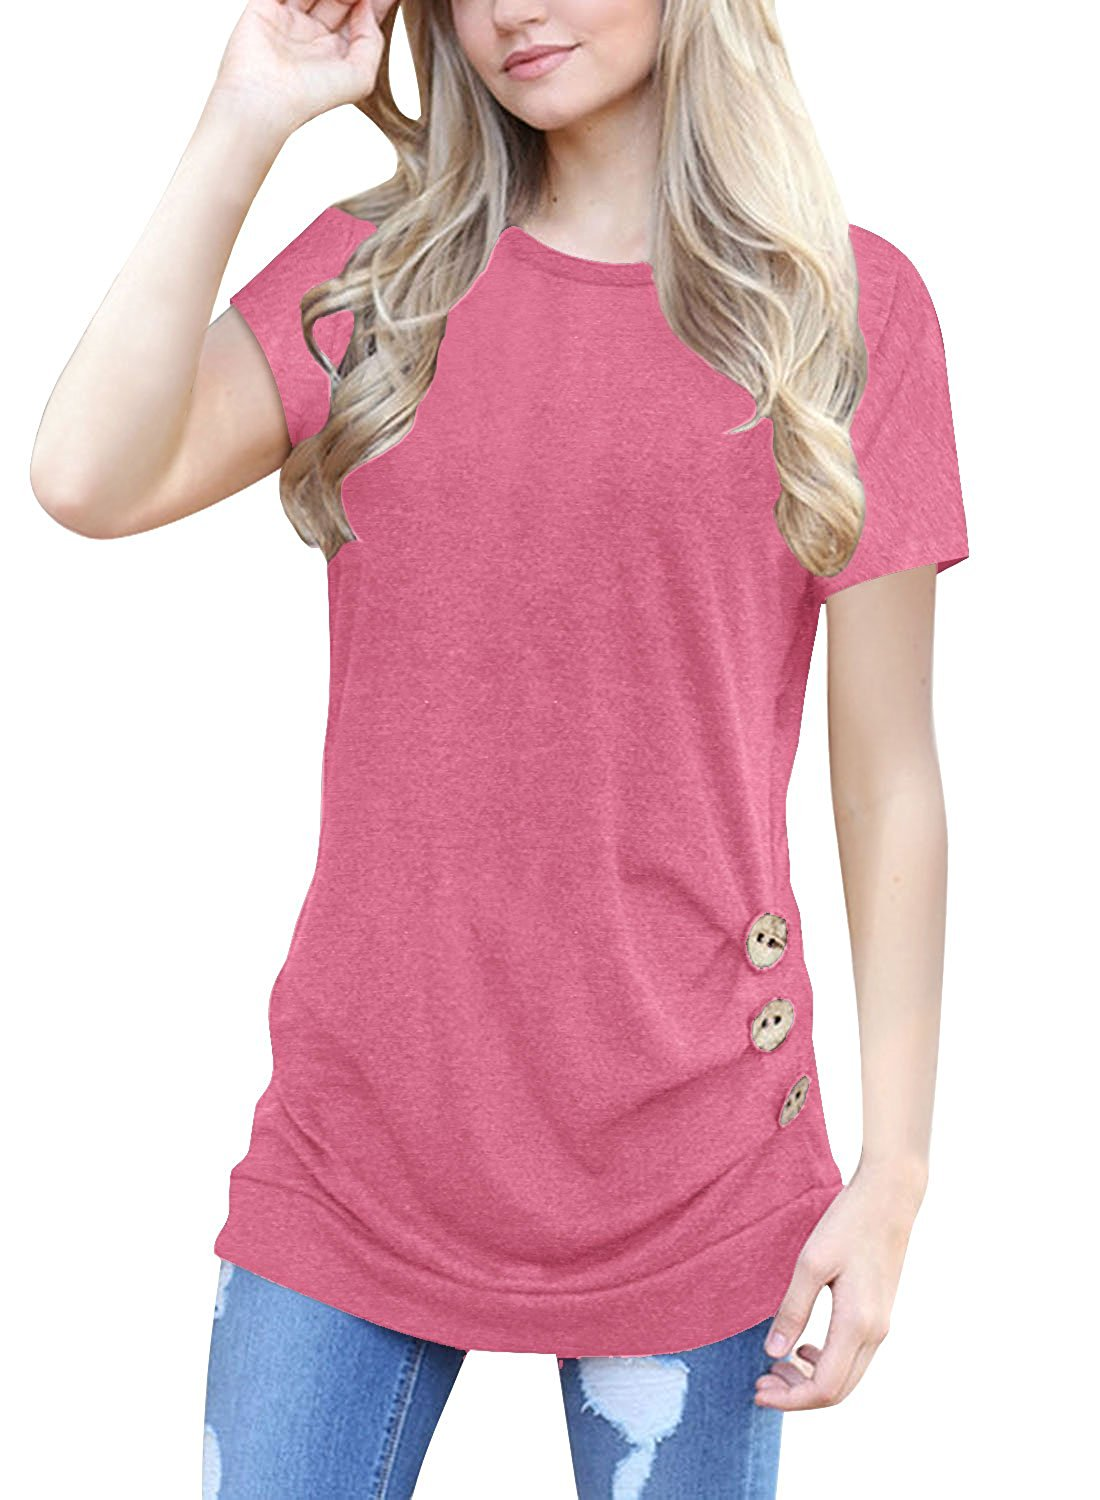 355127a77d Get Quotations · OURS Women s Casual Short Sleeve Tunics Solid Loose Fit T  Shirt Blouse Tops